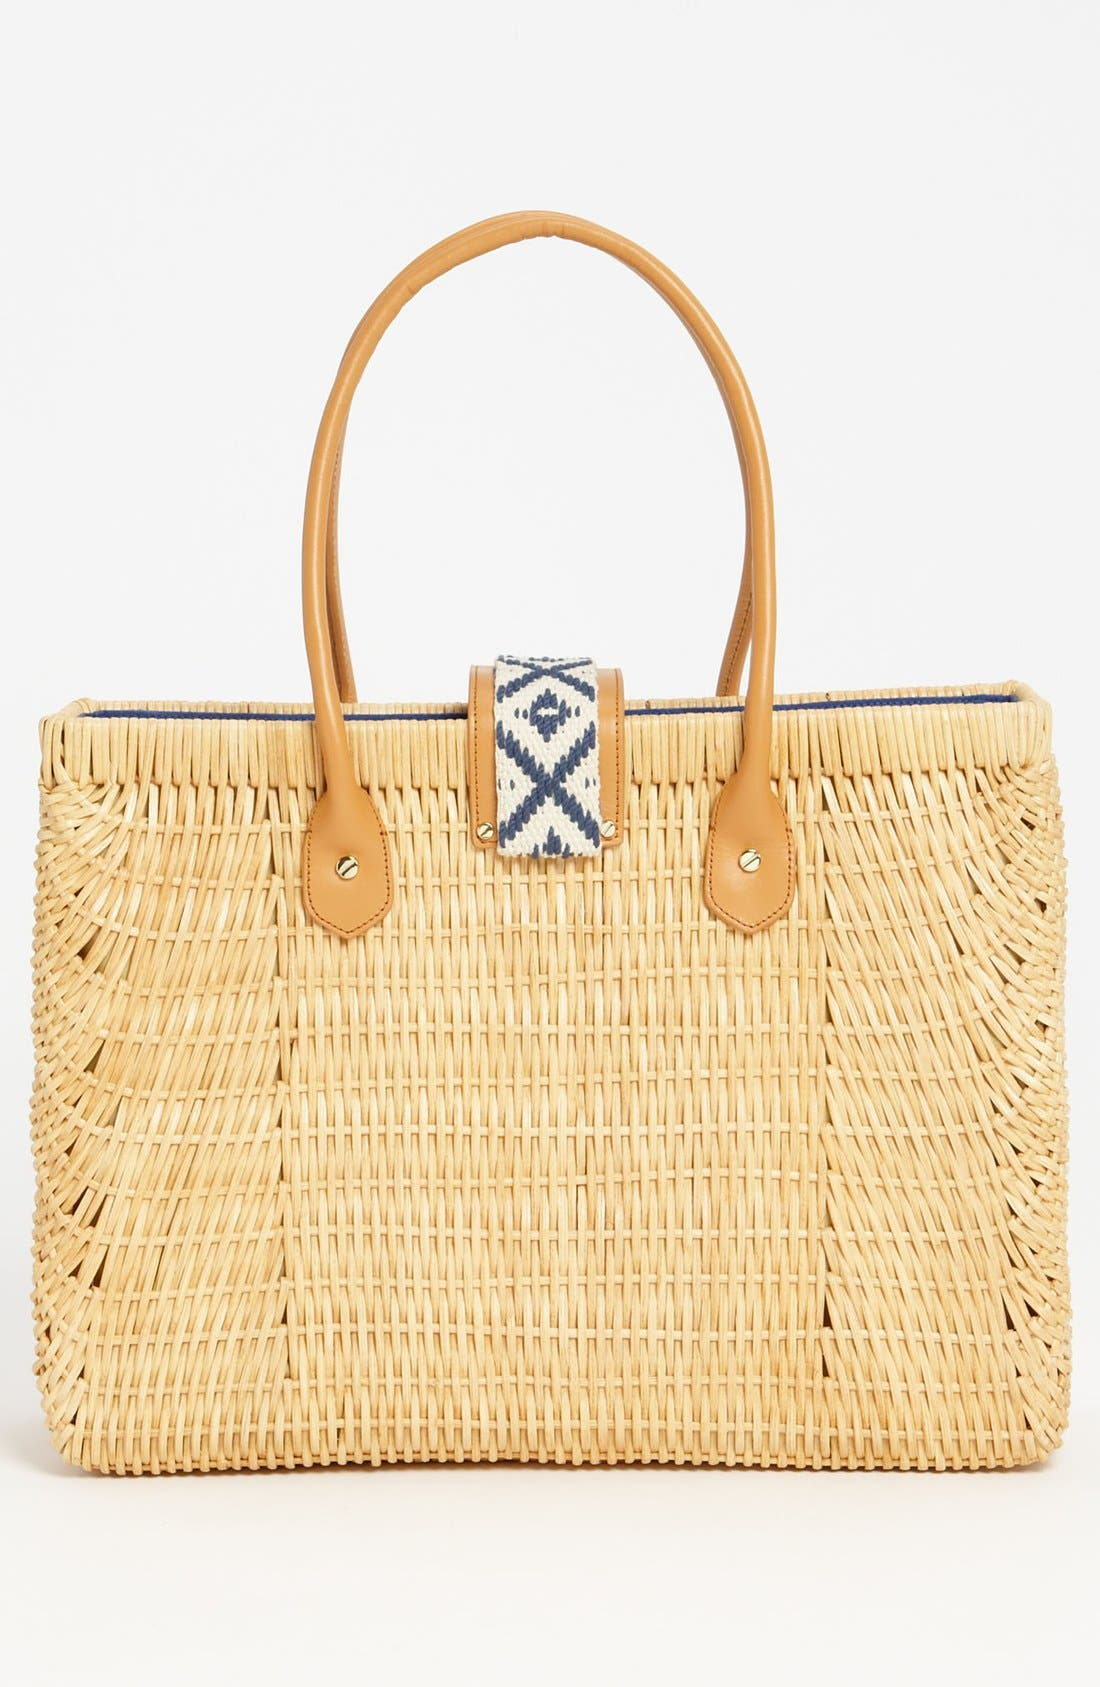 TORY BURCH, Rattan Tote, Alternate thumbnail 3, color, 282